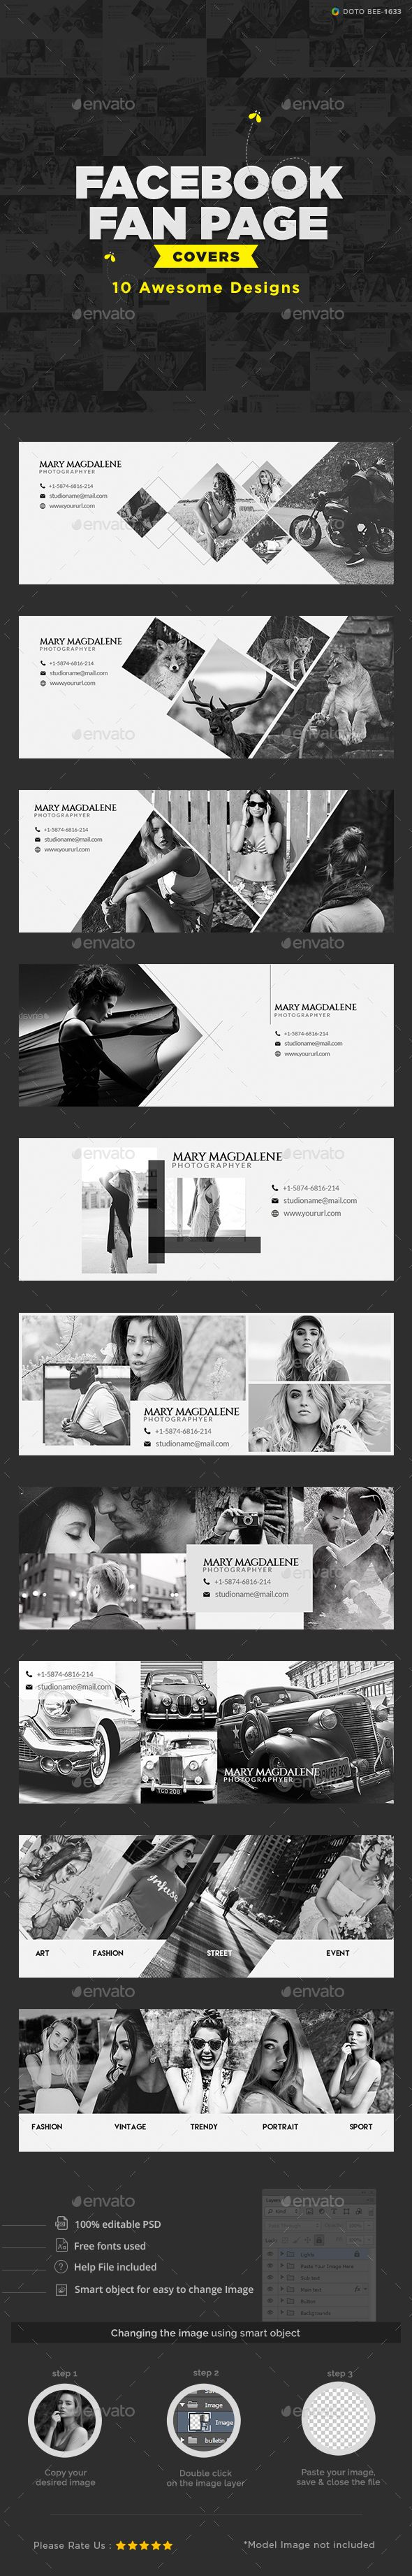 Multi Purpose Facebook Covers - 10 Design Templates PSD. Download here: https://graphicriver.net/item/multi-purpose-facebook-covers-10-designs/17520744?ref=ksioks